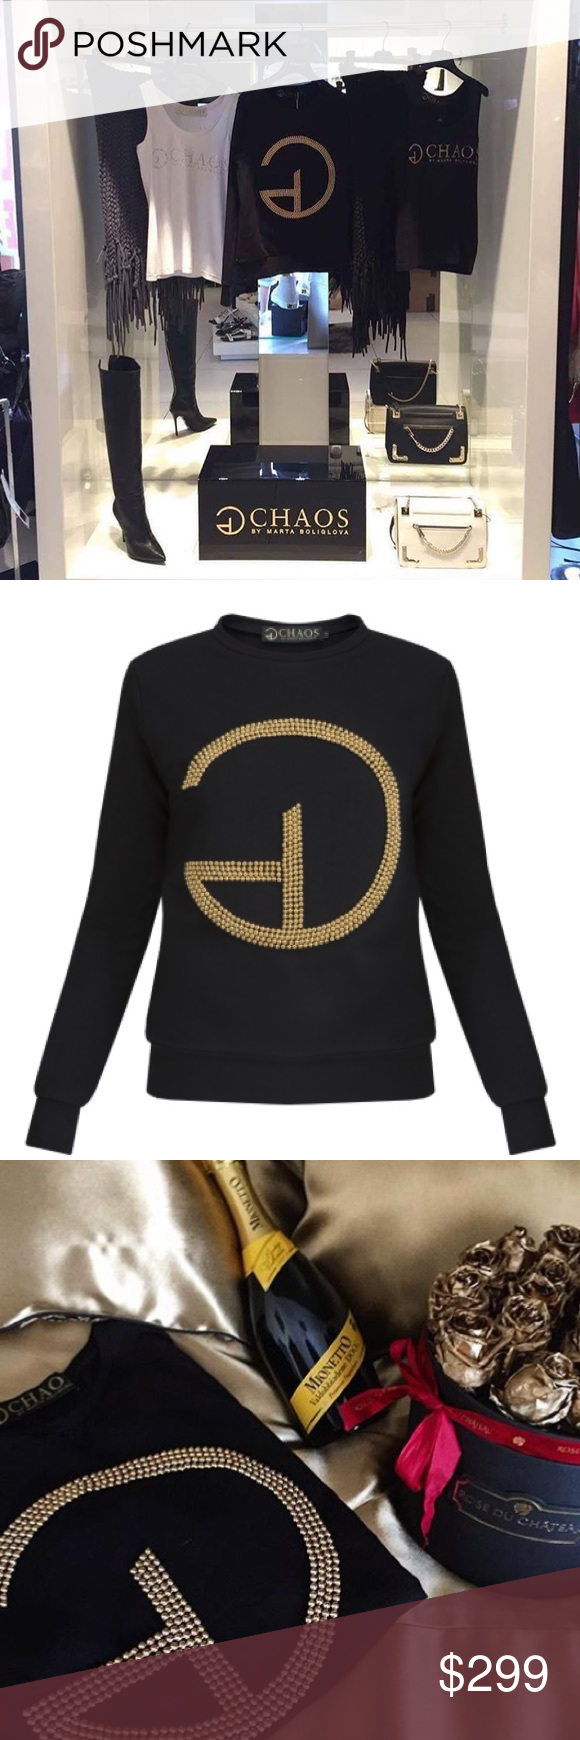 Handmade beautiful black sweater with gold perls NWT | Balmain ...